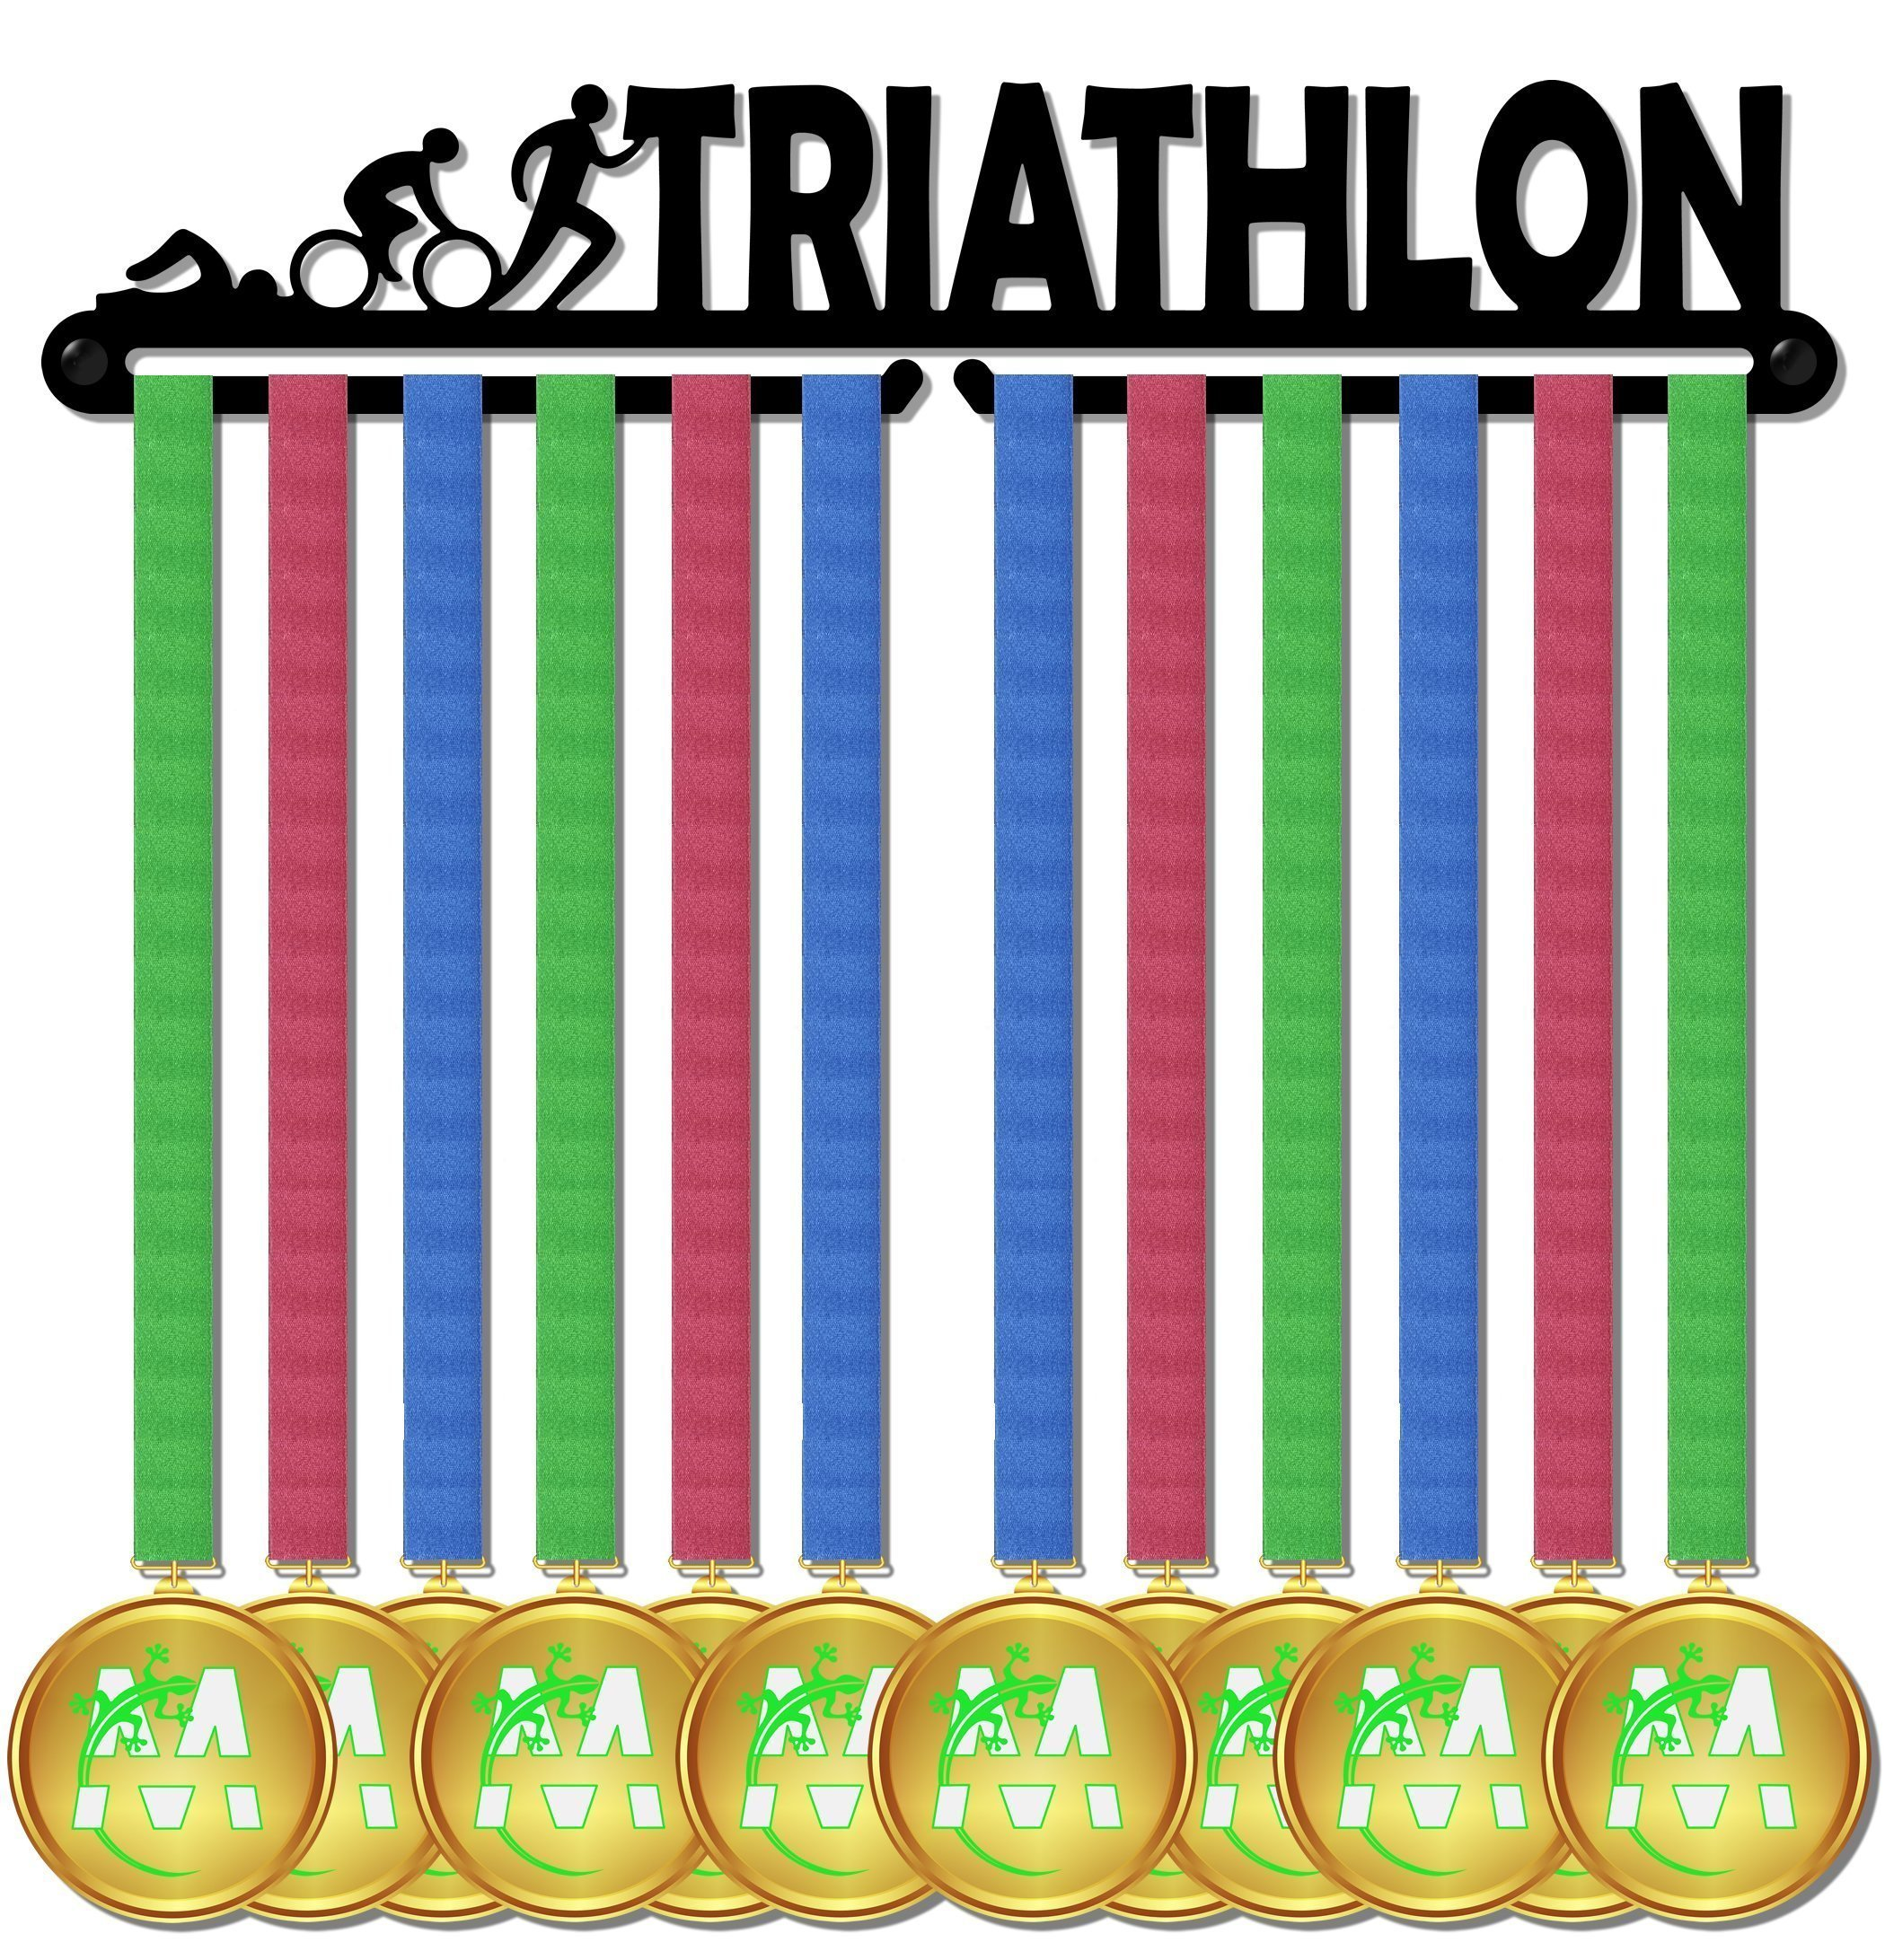 Medal Display medagliere da muro medal hanger triathlon design